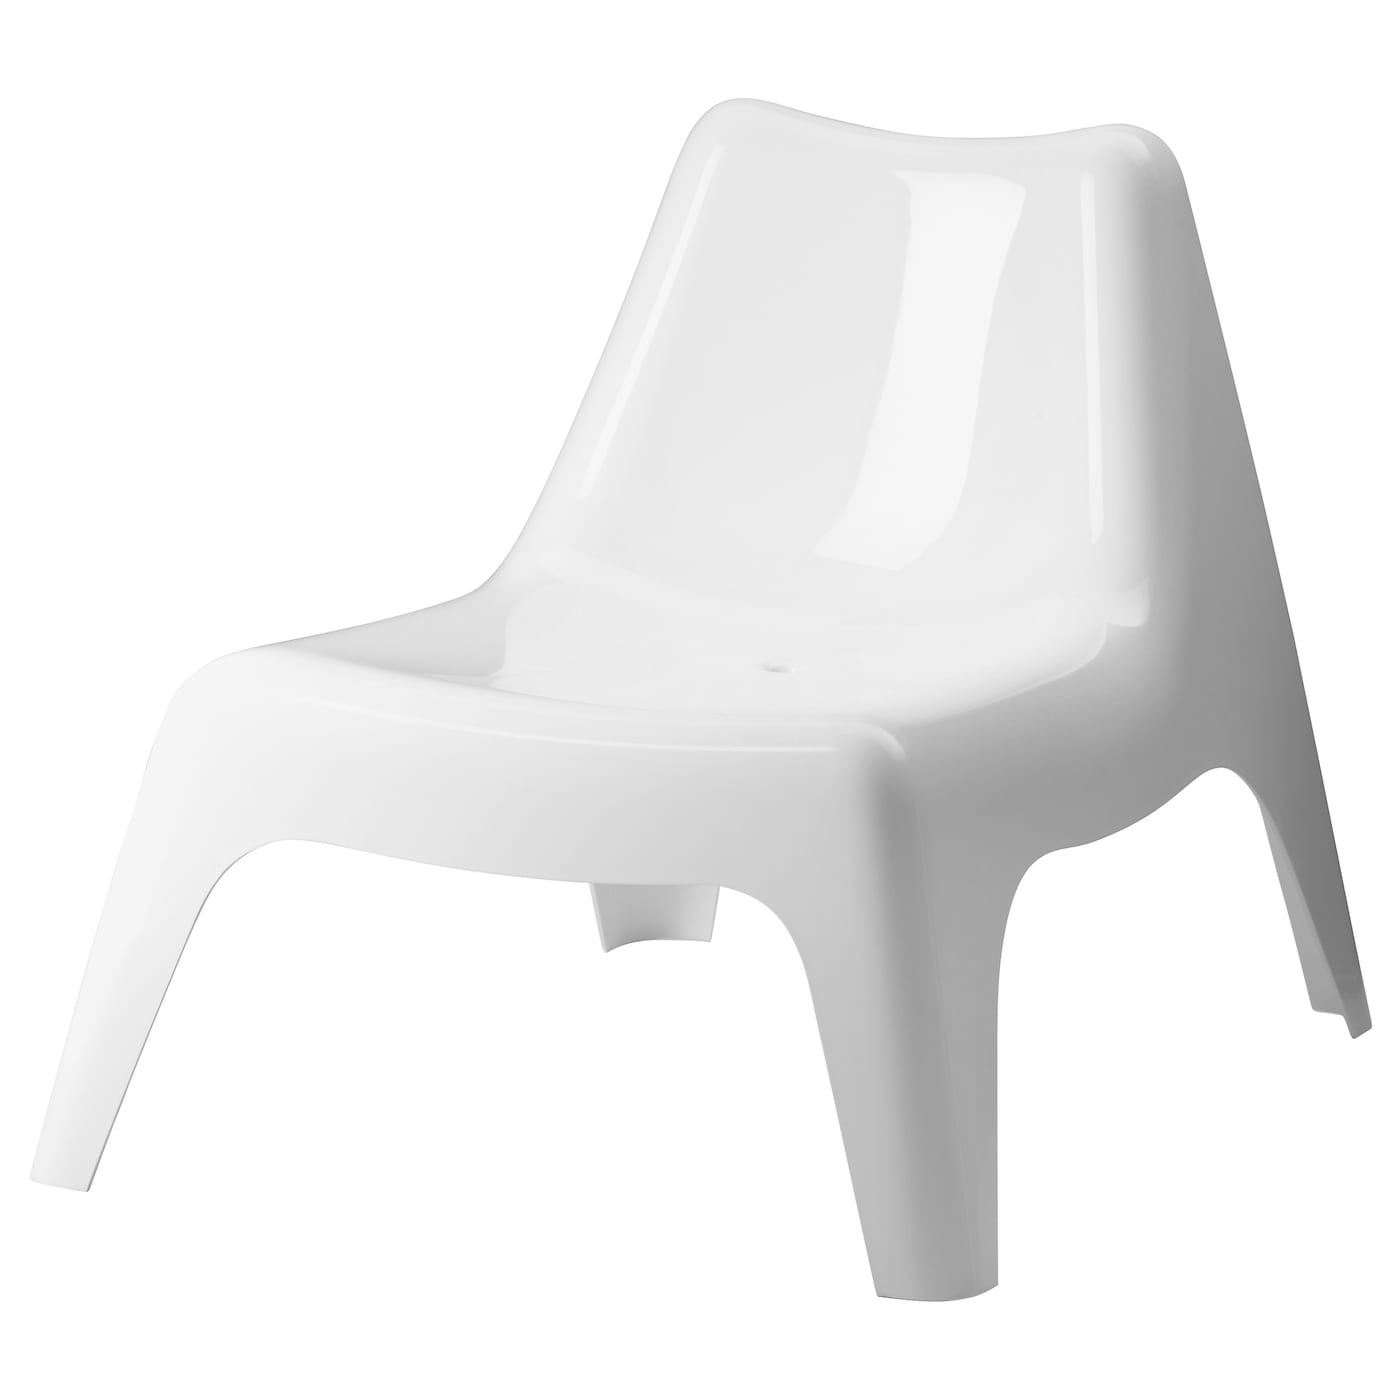 IKEA IKEA PS VÅGÖ easy chair, outdoor Can be stacked, which helps you save space.